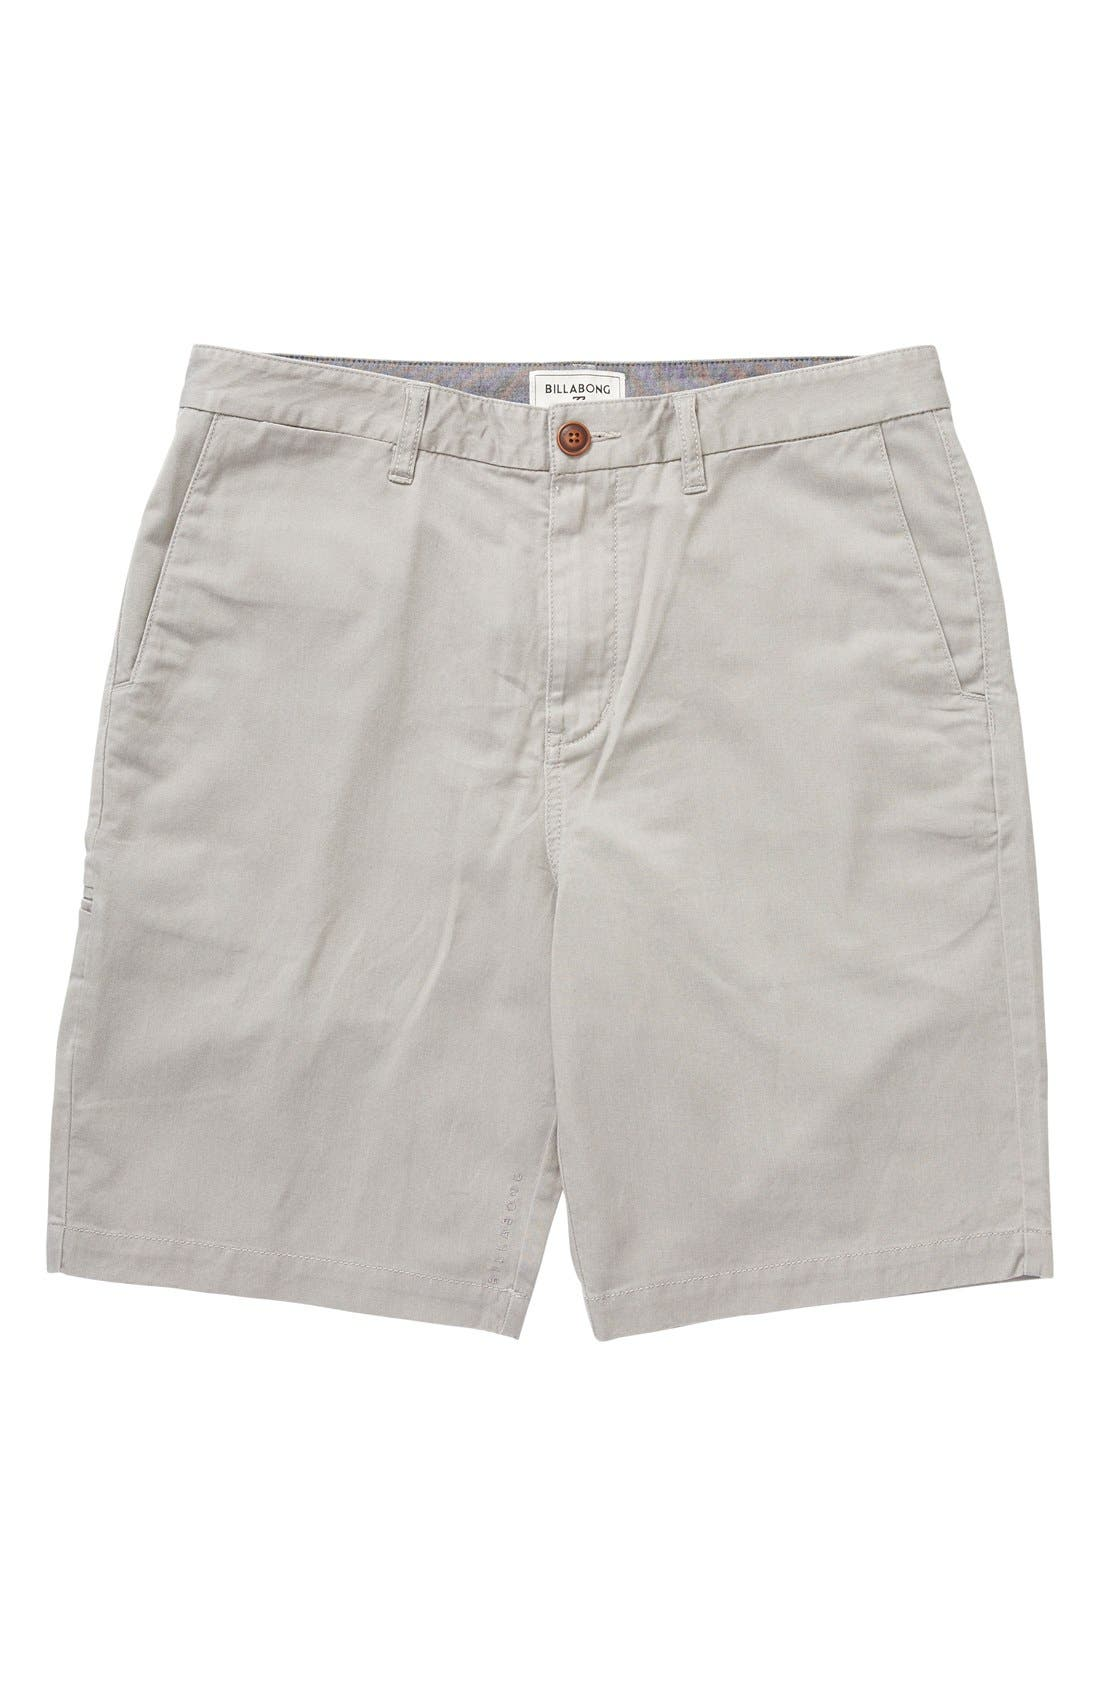 'Carter' Cotton Twill Shorts,                             Main thumbnail 2, color,